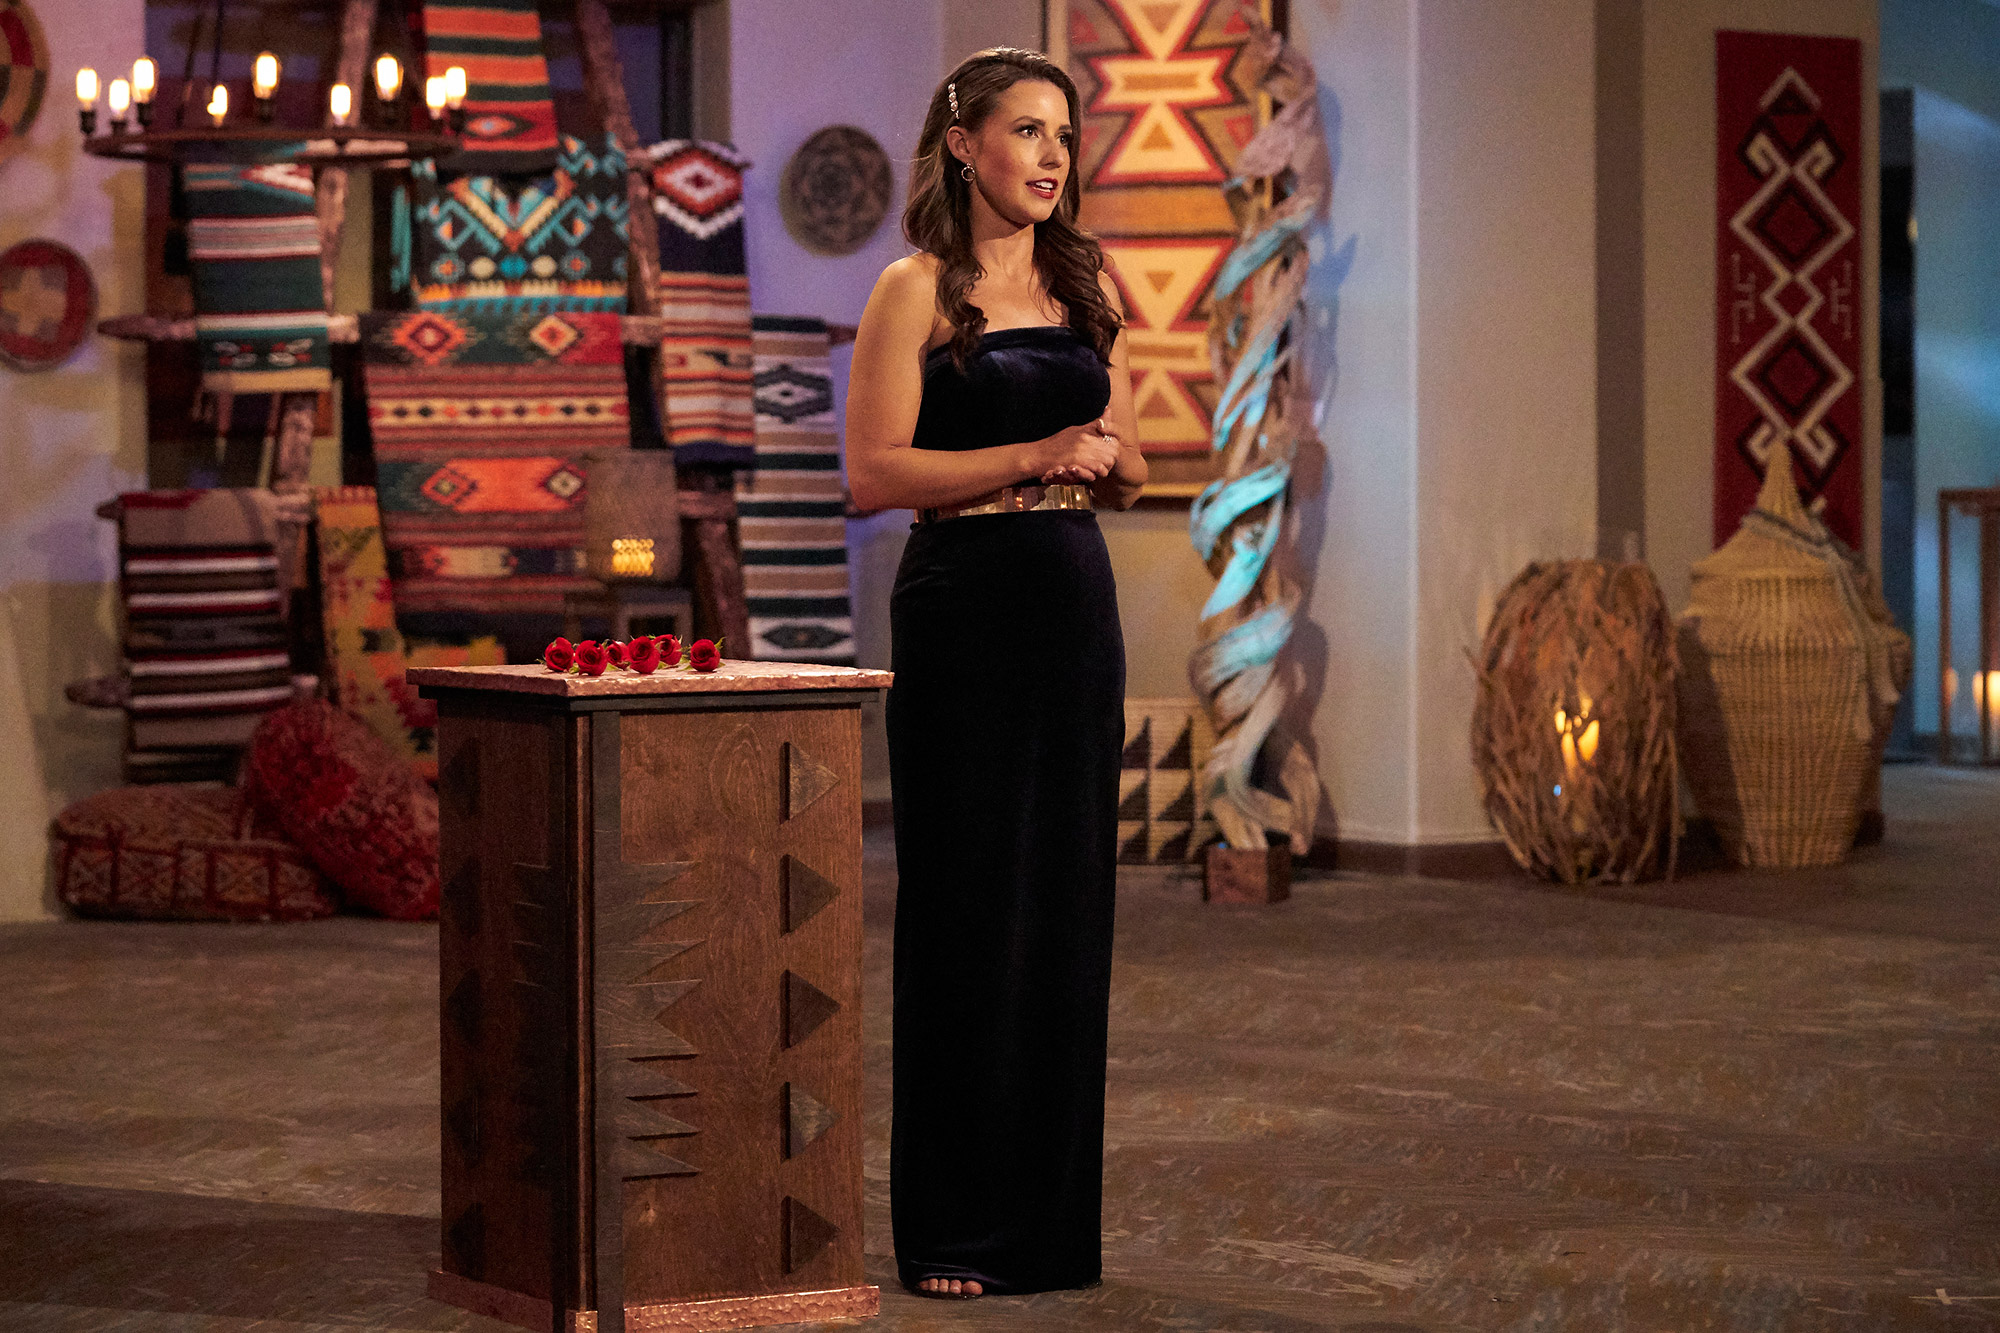 """THE BACHELORETTE - After narrowing down her suitors to the remaining dirty dozen, Katie hopes to find out who has the willpower to keep it clean with a new – and hard – challenge. While the guys in the house see if they can keep their promise, one lucky man opens up to Katie with vows of his own in a ceremonious one-on-one date. Katie then enlists two queens – """"RuPaul's Drag Race All-Stars"""" winners Shea Couleé and Monét X Change – to help find her a king in a group date debate that is sure to bring some royal tension. And later, a one-on-one date becomes a two-on-two, with a special double date featuring Bachelor Nation power couple Kaitlyn Bristowe and (her now fiancé) Jason Tartick. But do Kaitlyn and Jason's connection make Katie question her own? An all-new """"The Bachelorette"""" airs MONDAY, JULY 12 (8:00-10:00 p.m. EDT), on ABC. (ABC/Craig Sjodin) KATIE THURSTON"""